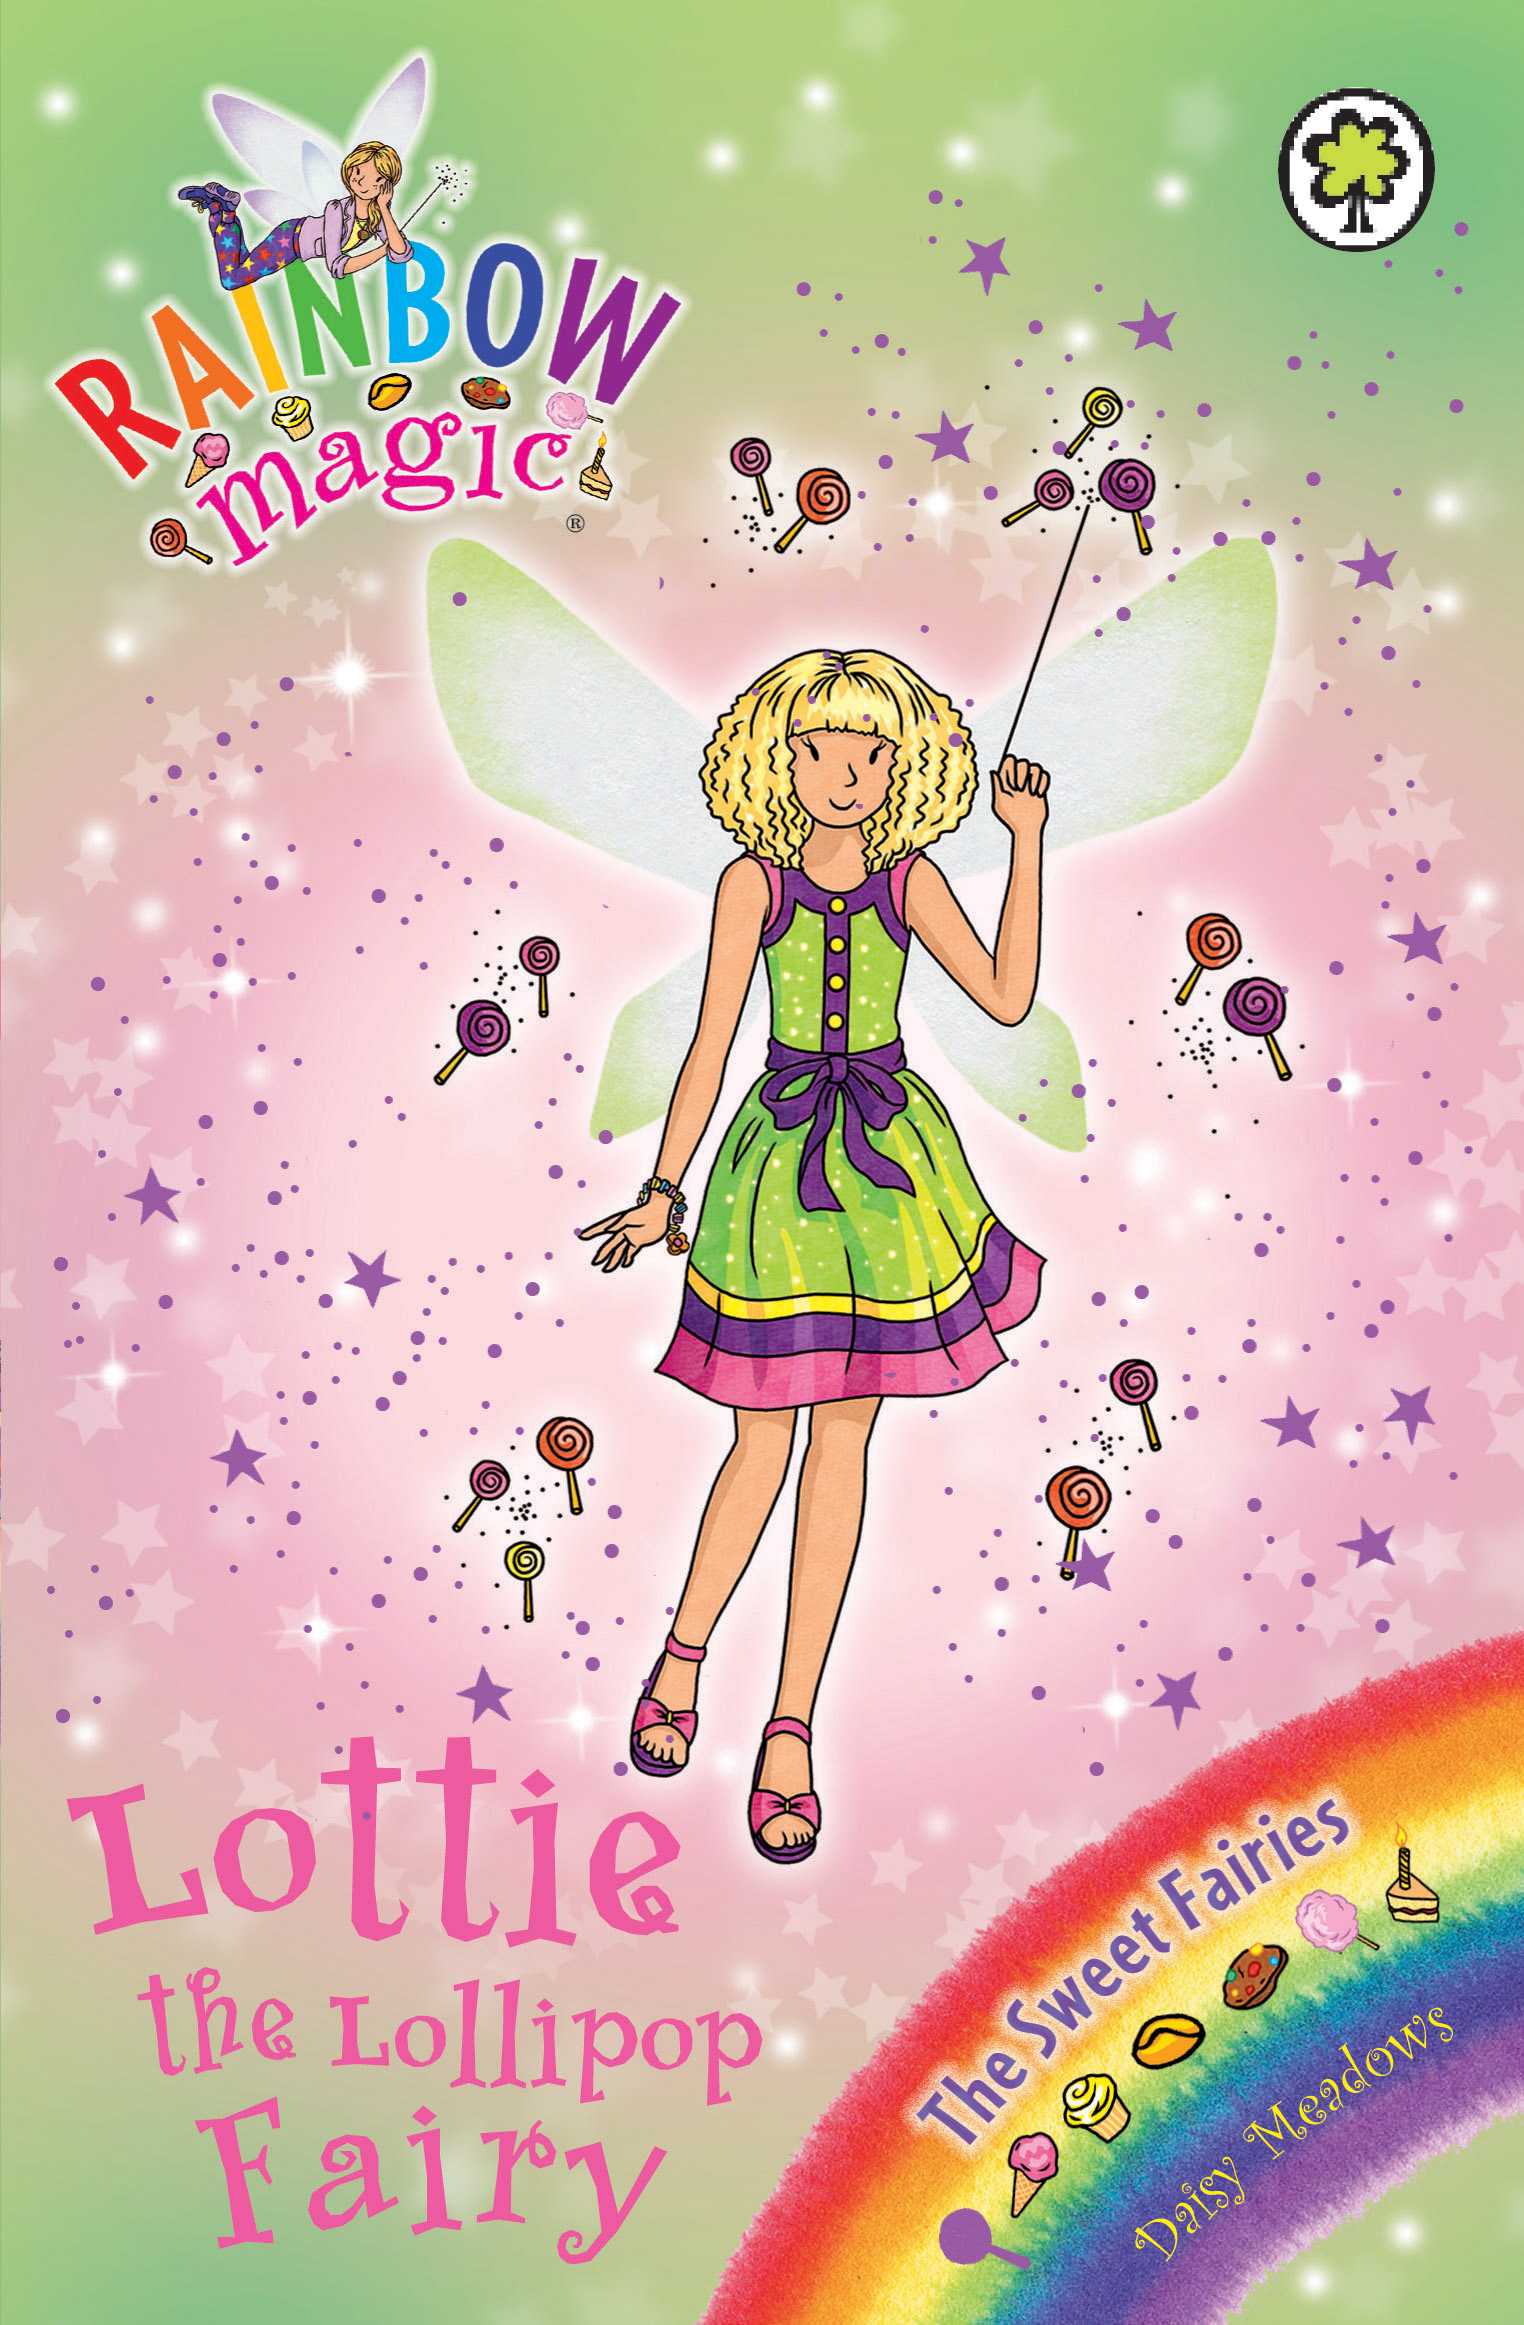 File:Lottie the Lollipop Fairy.jpg